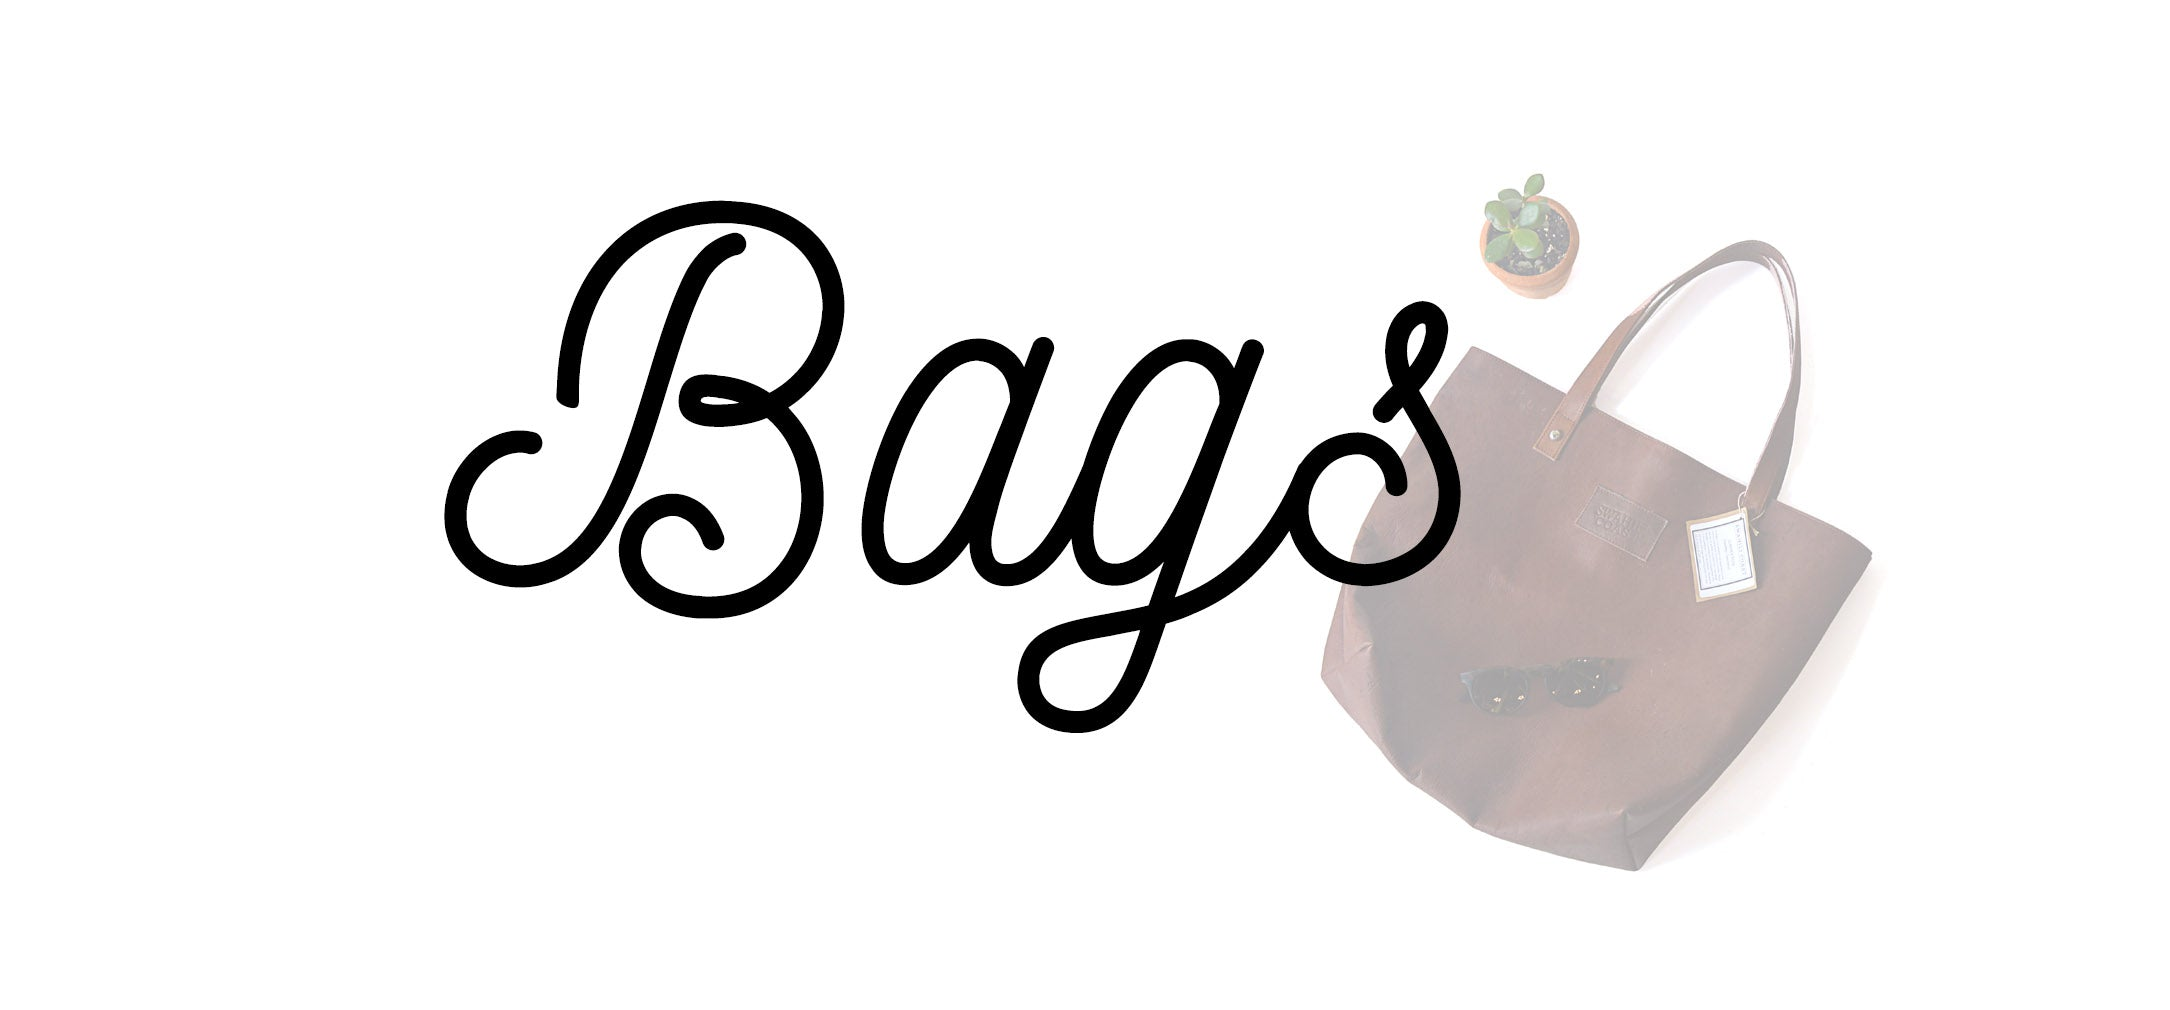 Bags. Fair trade accessories ethically handmade by empowered artisans in East Africa.